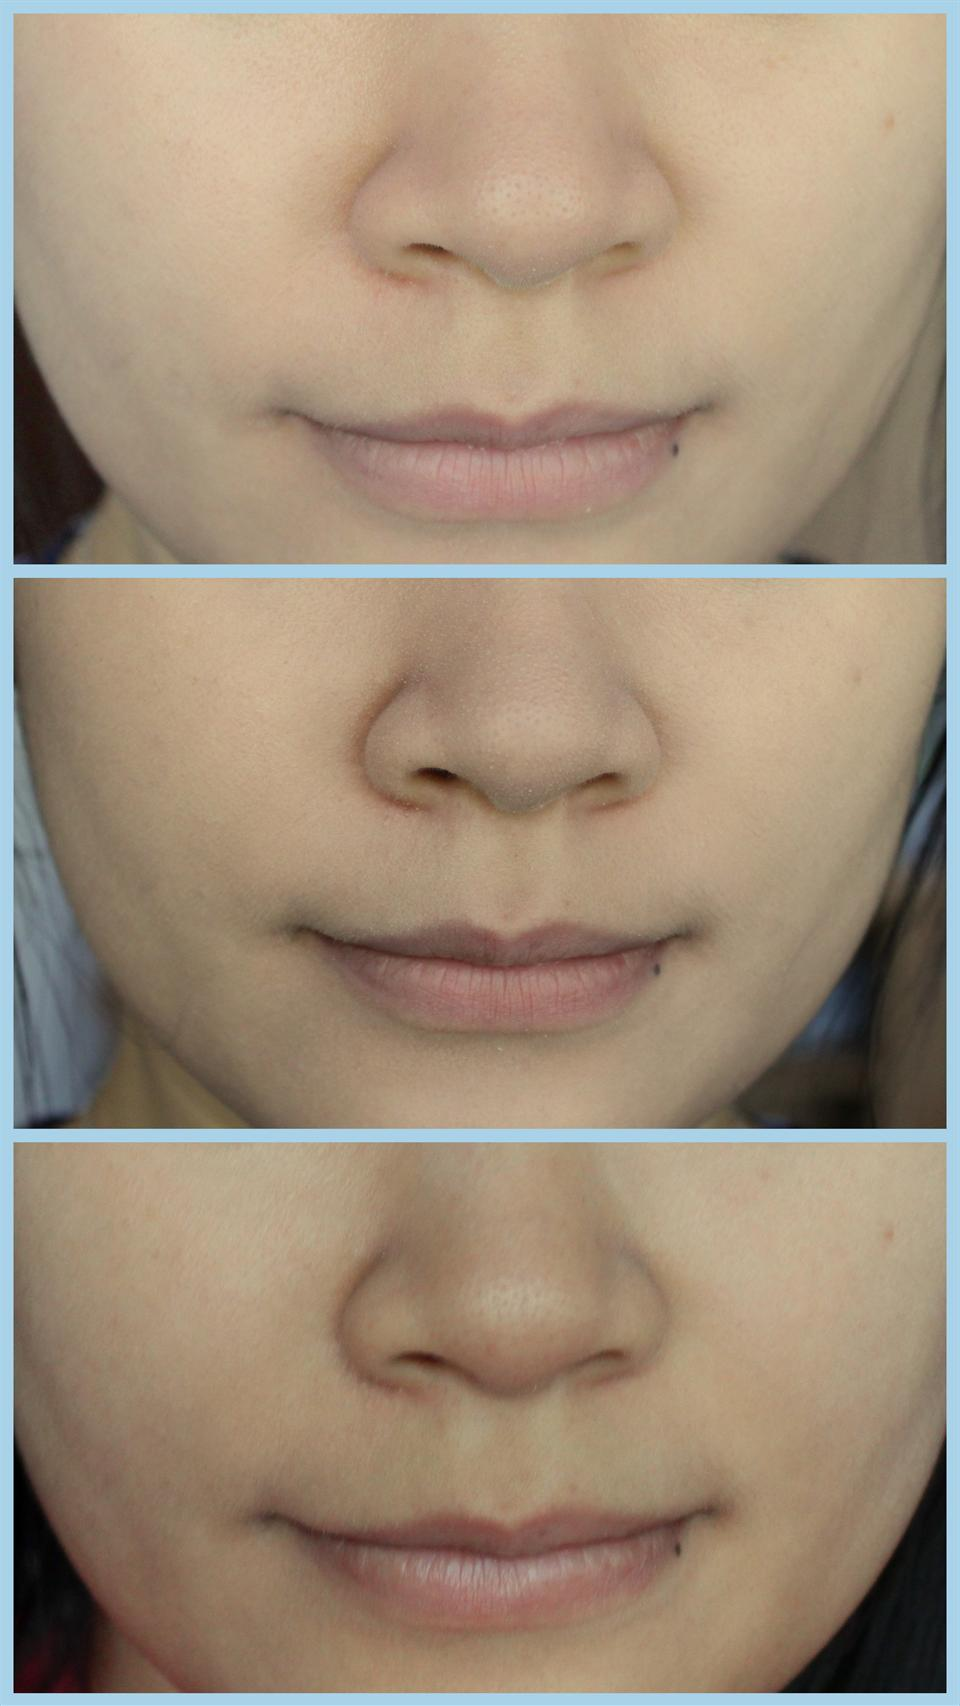 Từ trên xuống dưới: my bare face, with Long Wear Cushion (right after application) and face with Long Wear Cushion after 5 hours